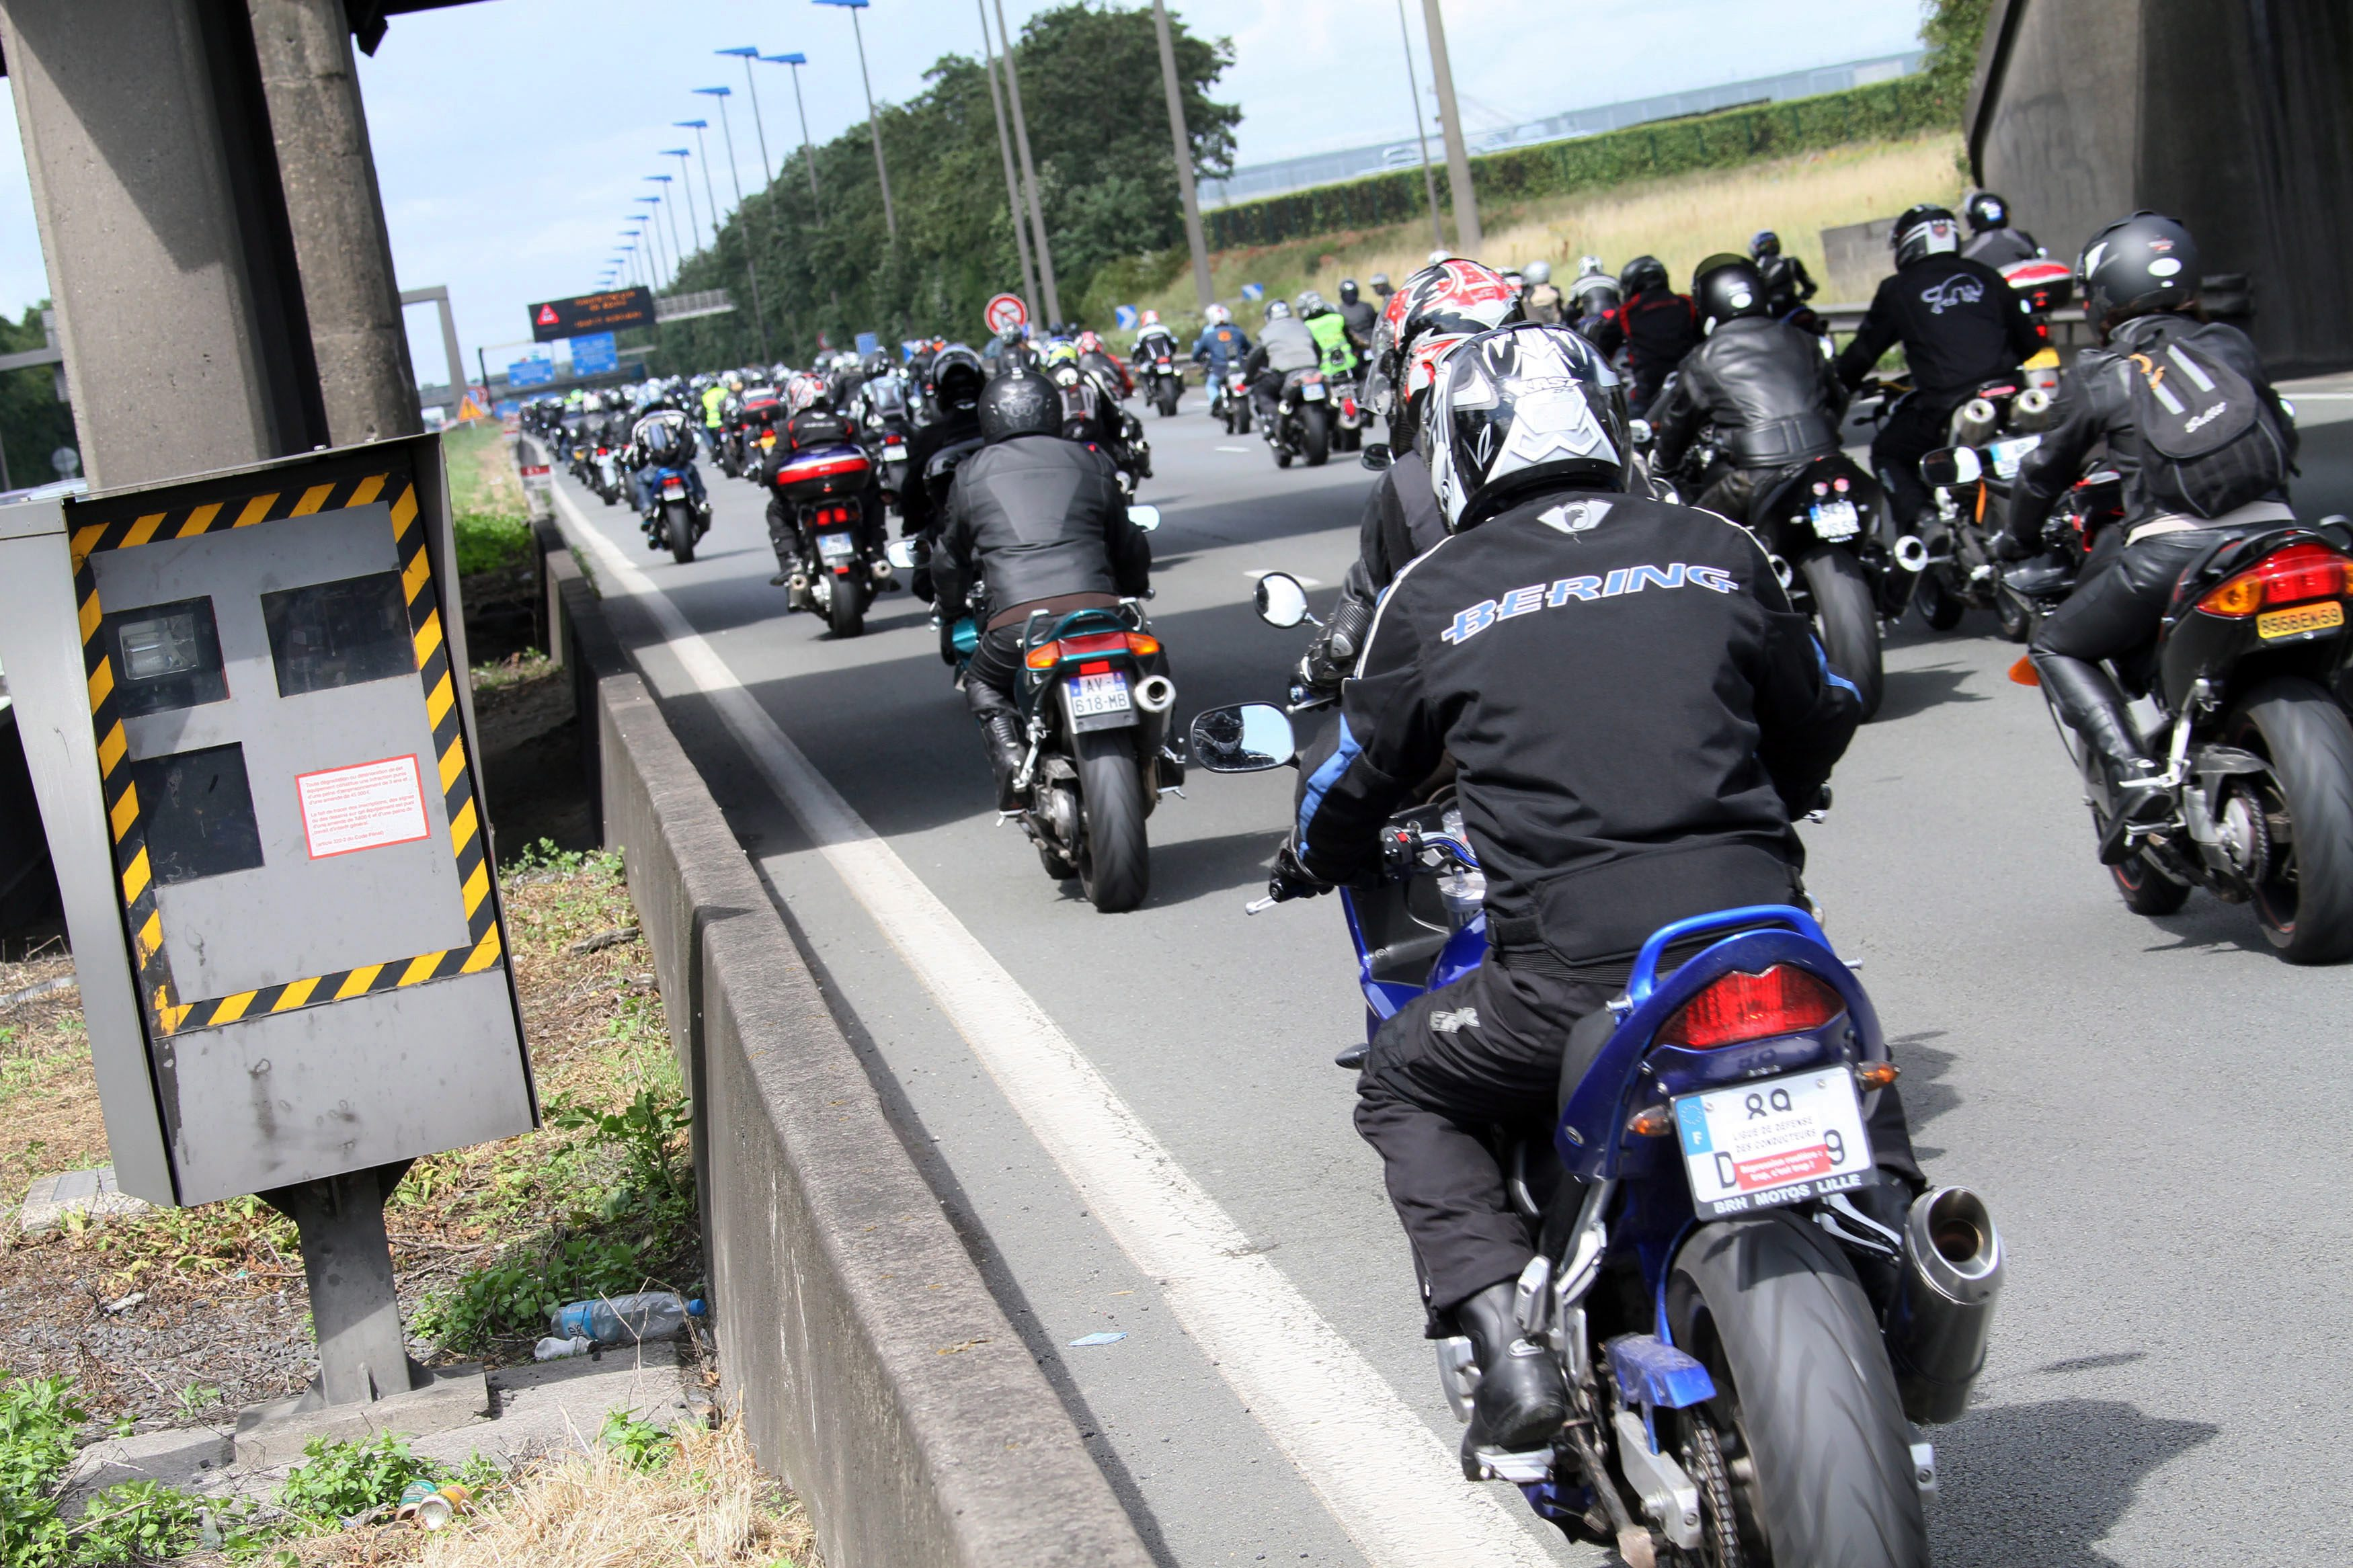 French Motocyclists And Drivers Associations Demonstrate Against New French Government Road Traffic Legislation